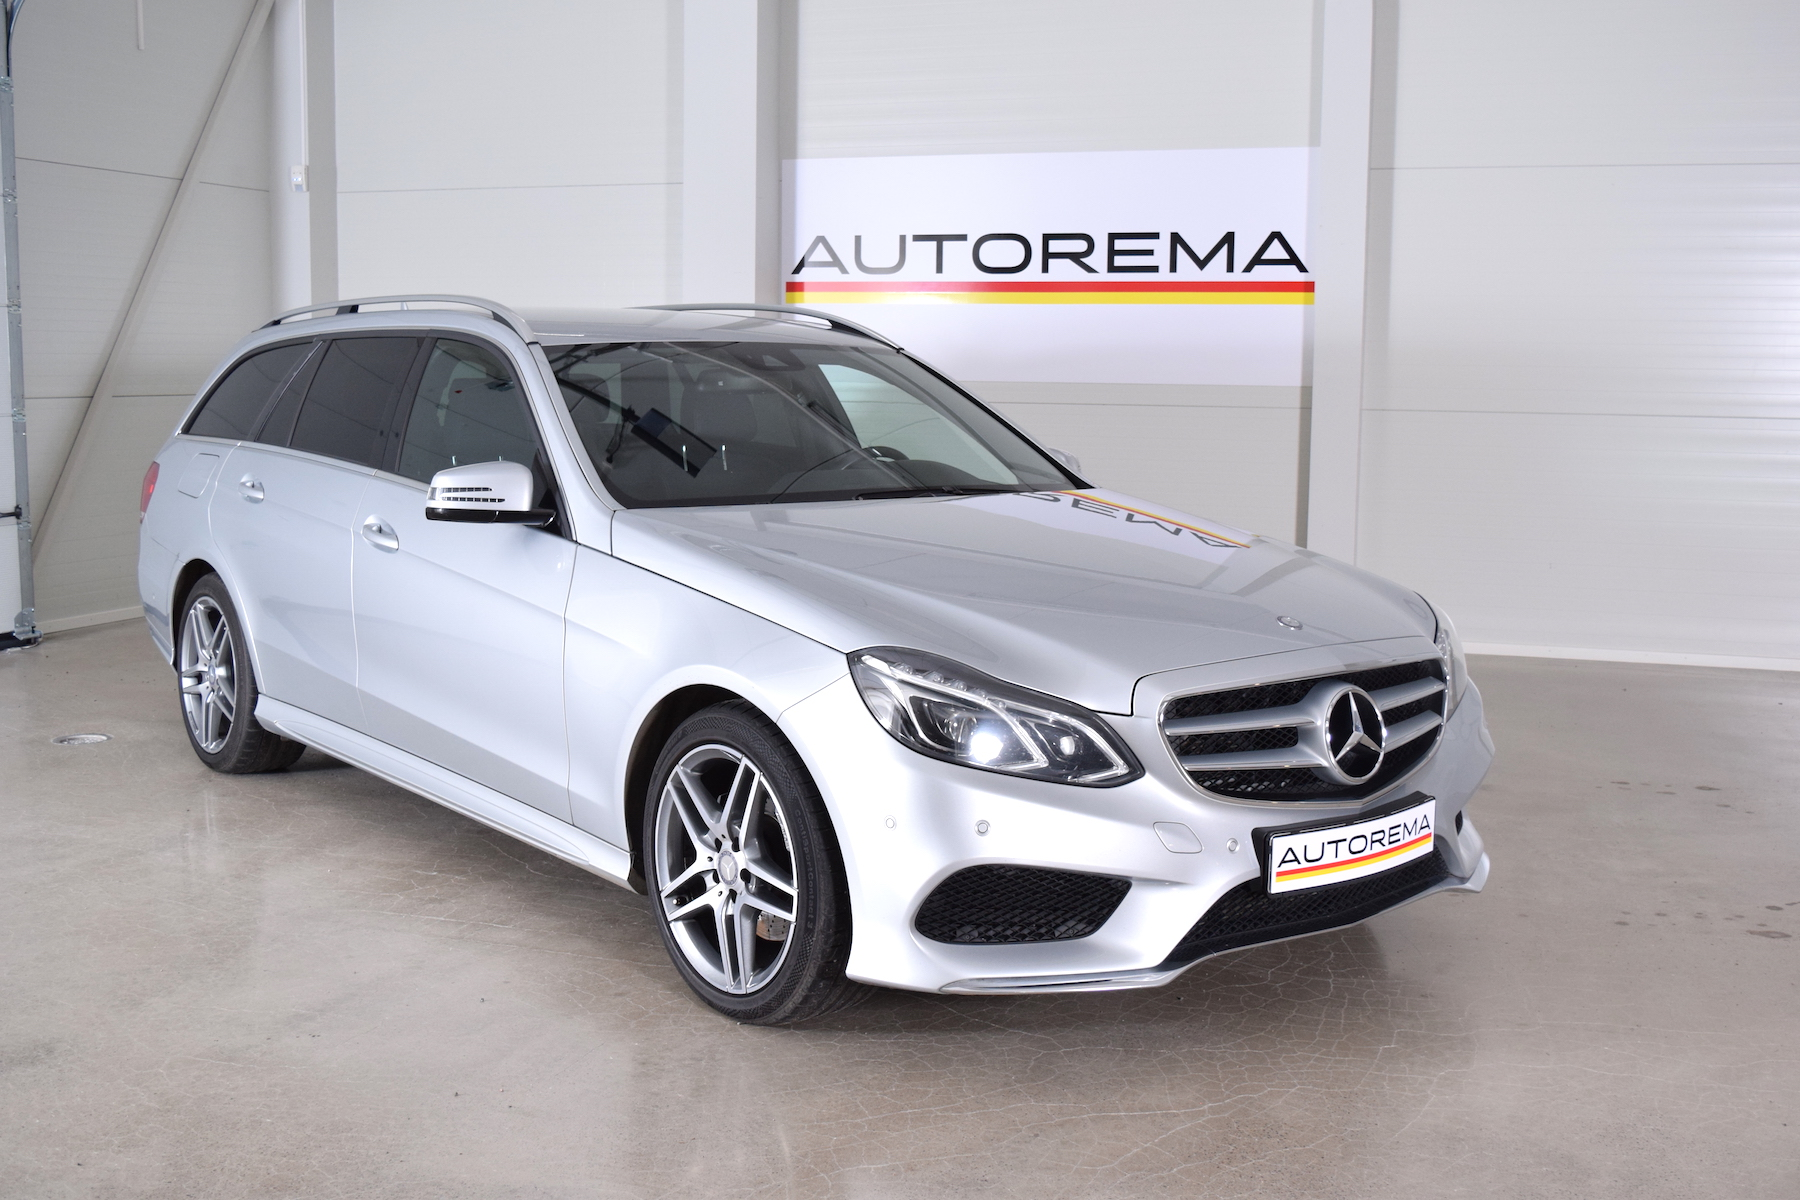 mercedes benz e 250 cdi 4 matic 2013 autorema. Black Bedroom Furniture Sets. Home Design Ideas